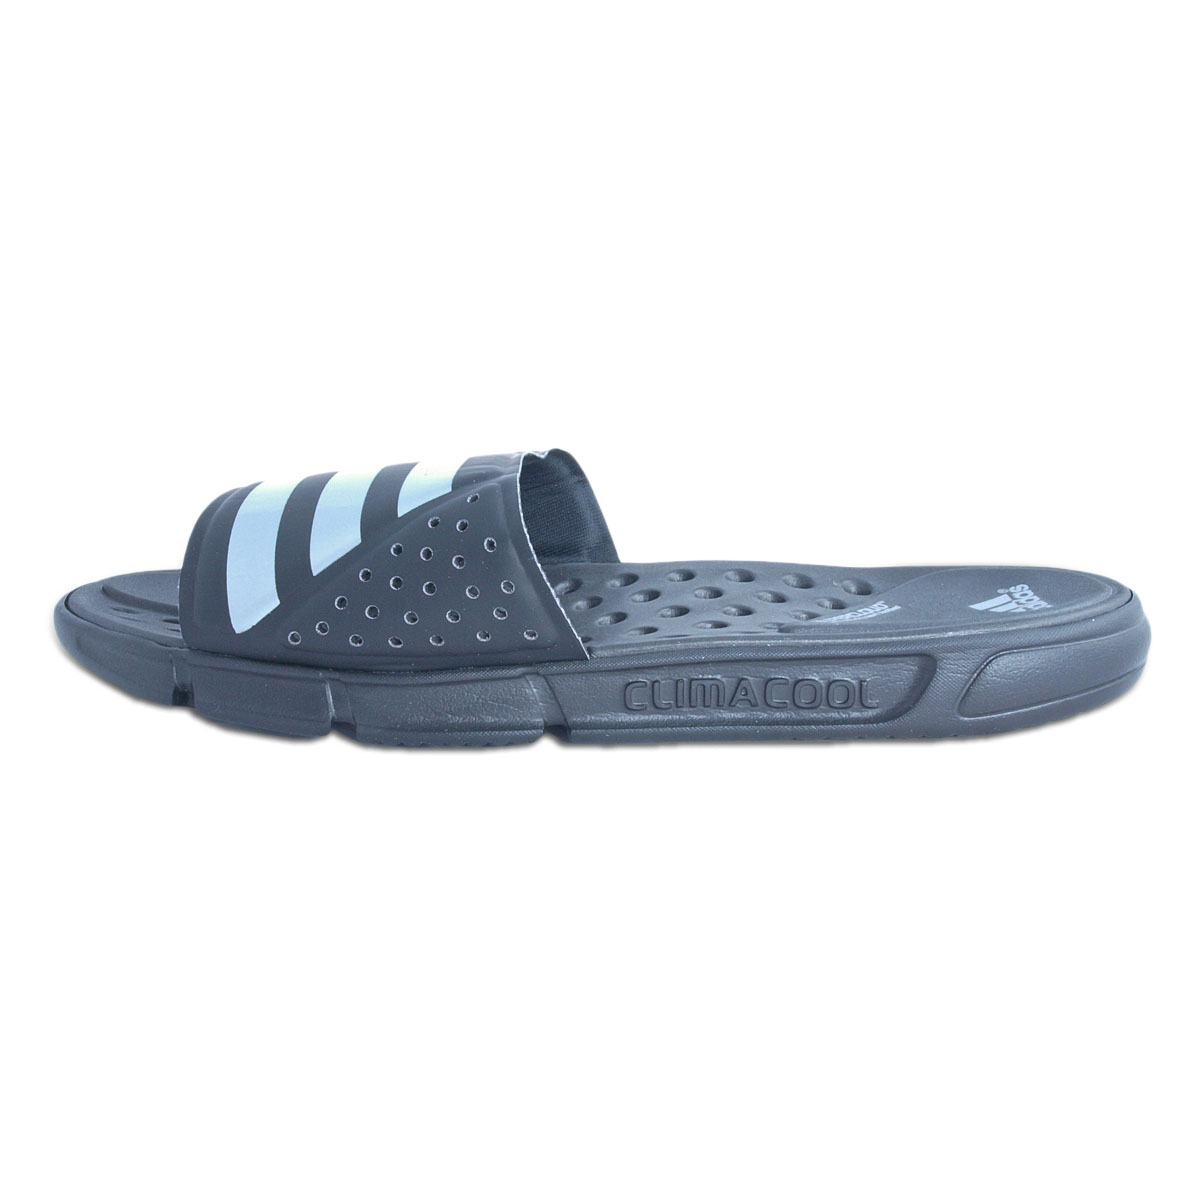 d51be56b435 Buy adidas climacool slippers